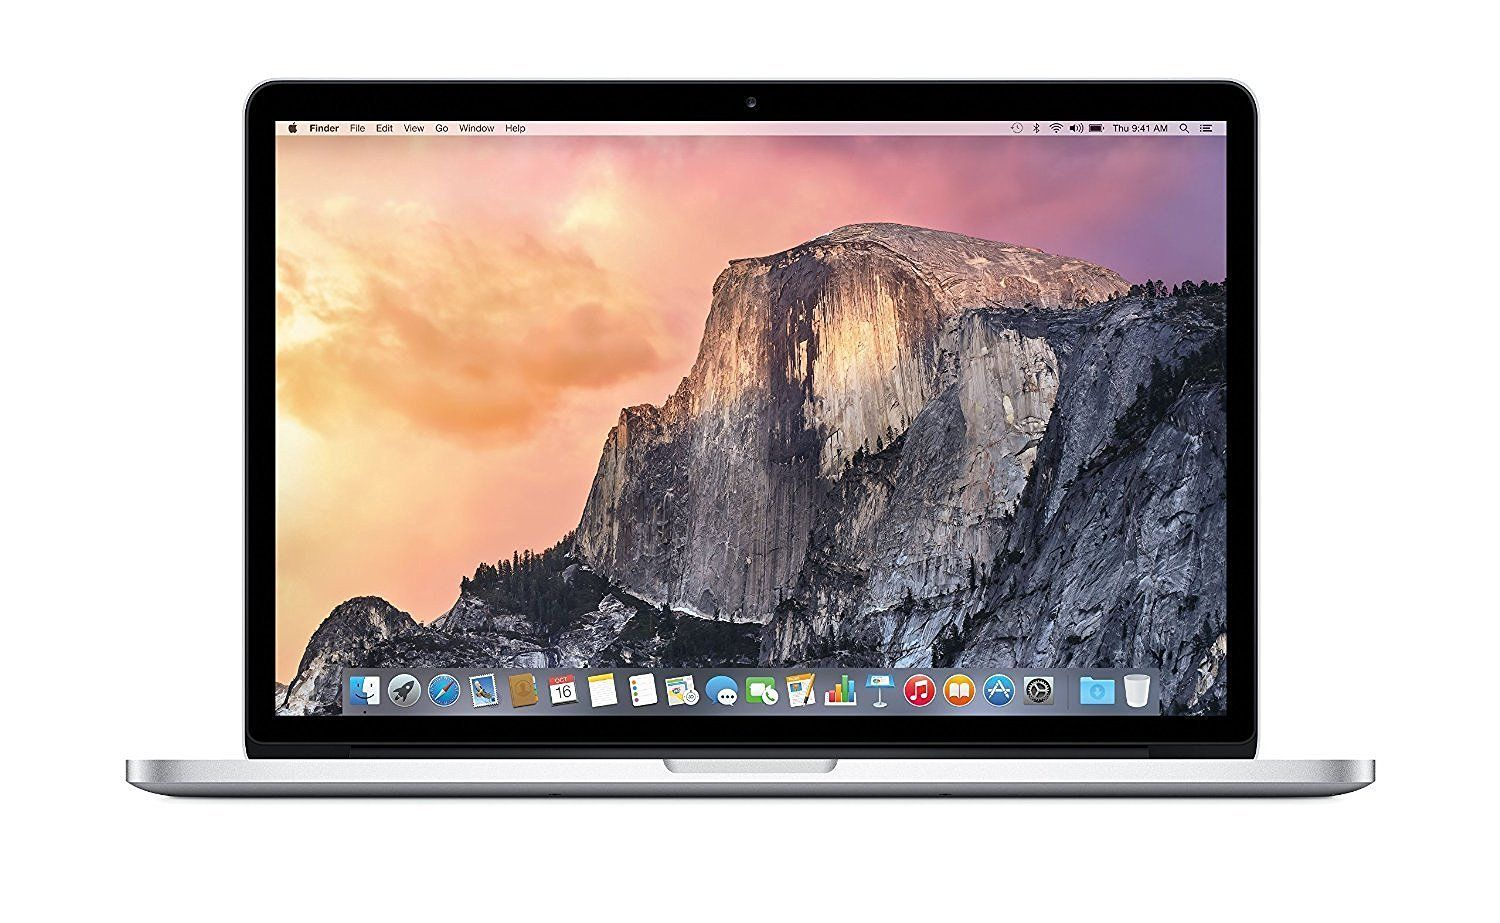 Buy Apple Macbook Pro Mjlq2hn A 15 Inch Laptop Core I7 16gb 256gb Mac Os Integrated Graphics Online At Apple Macbook Air Macbook Pro Apple Macbook Pro Retina